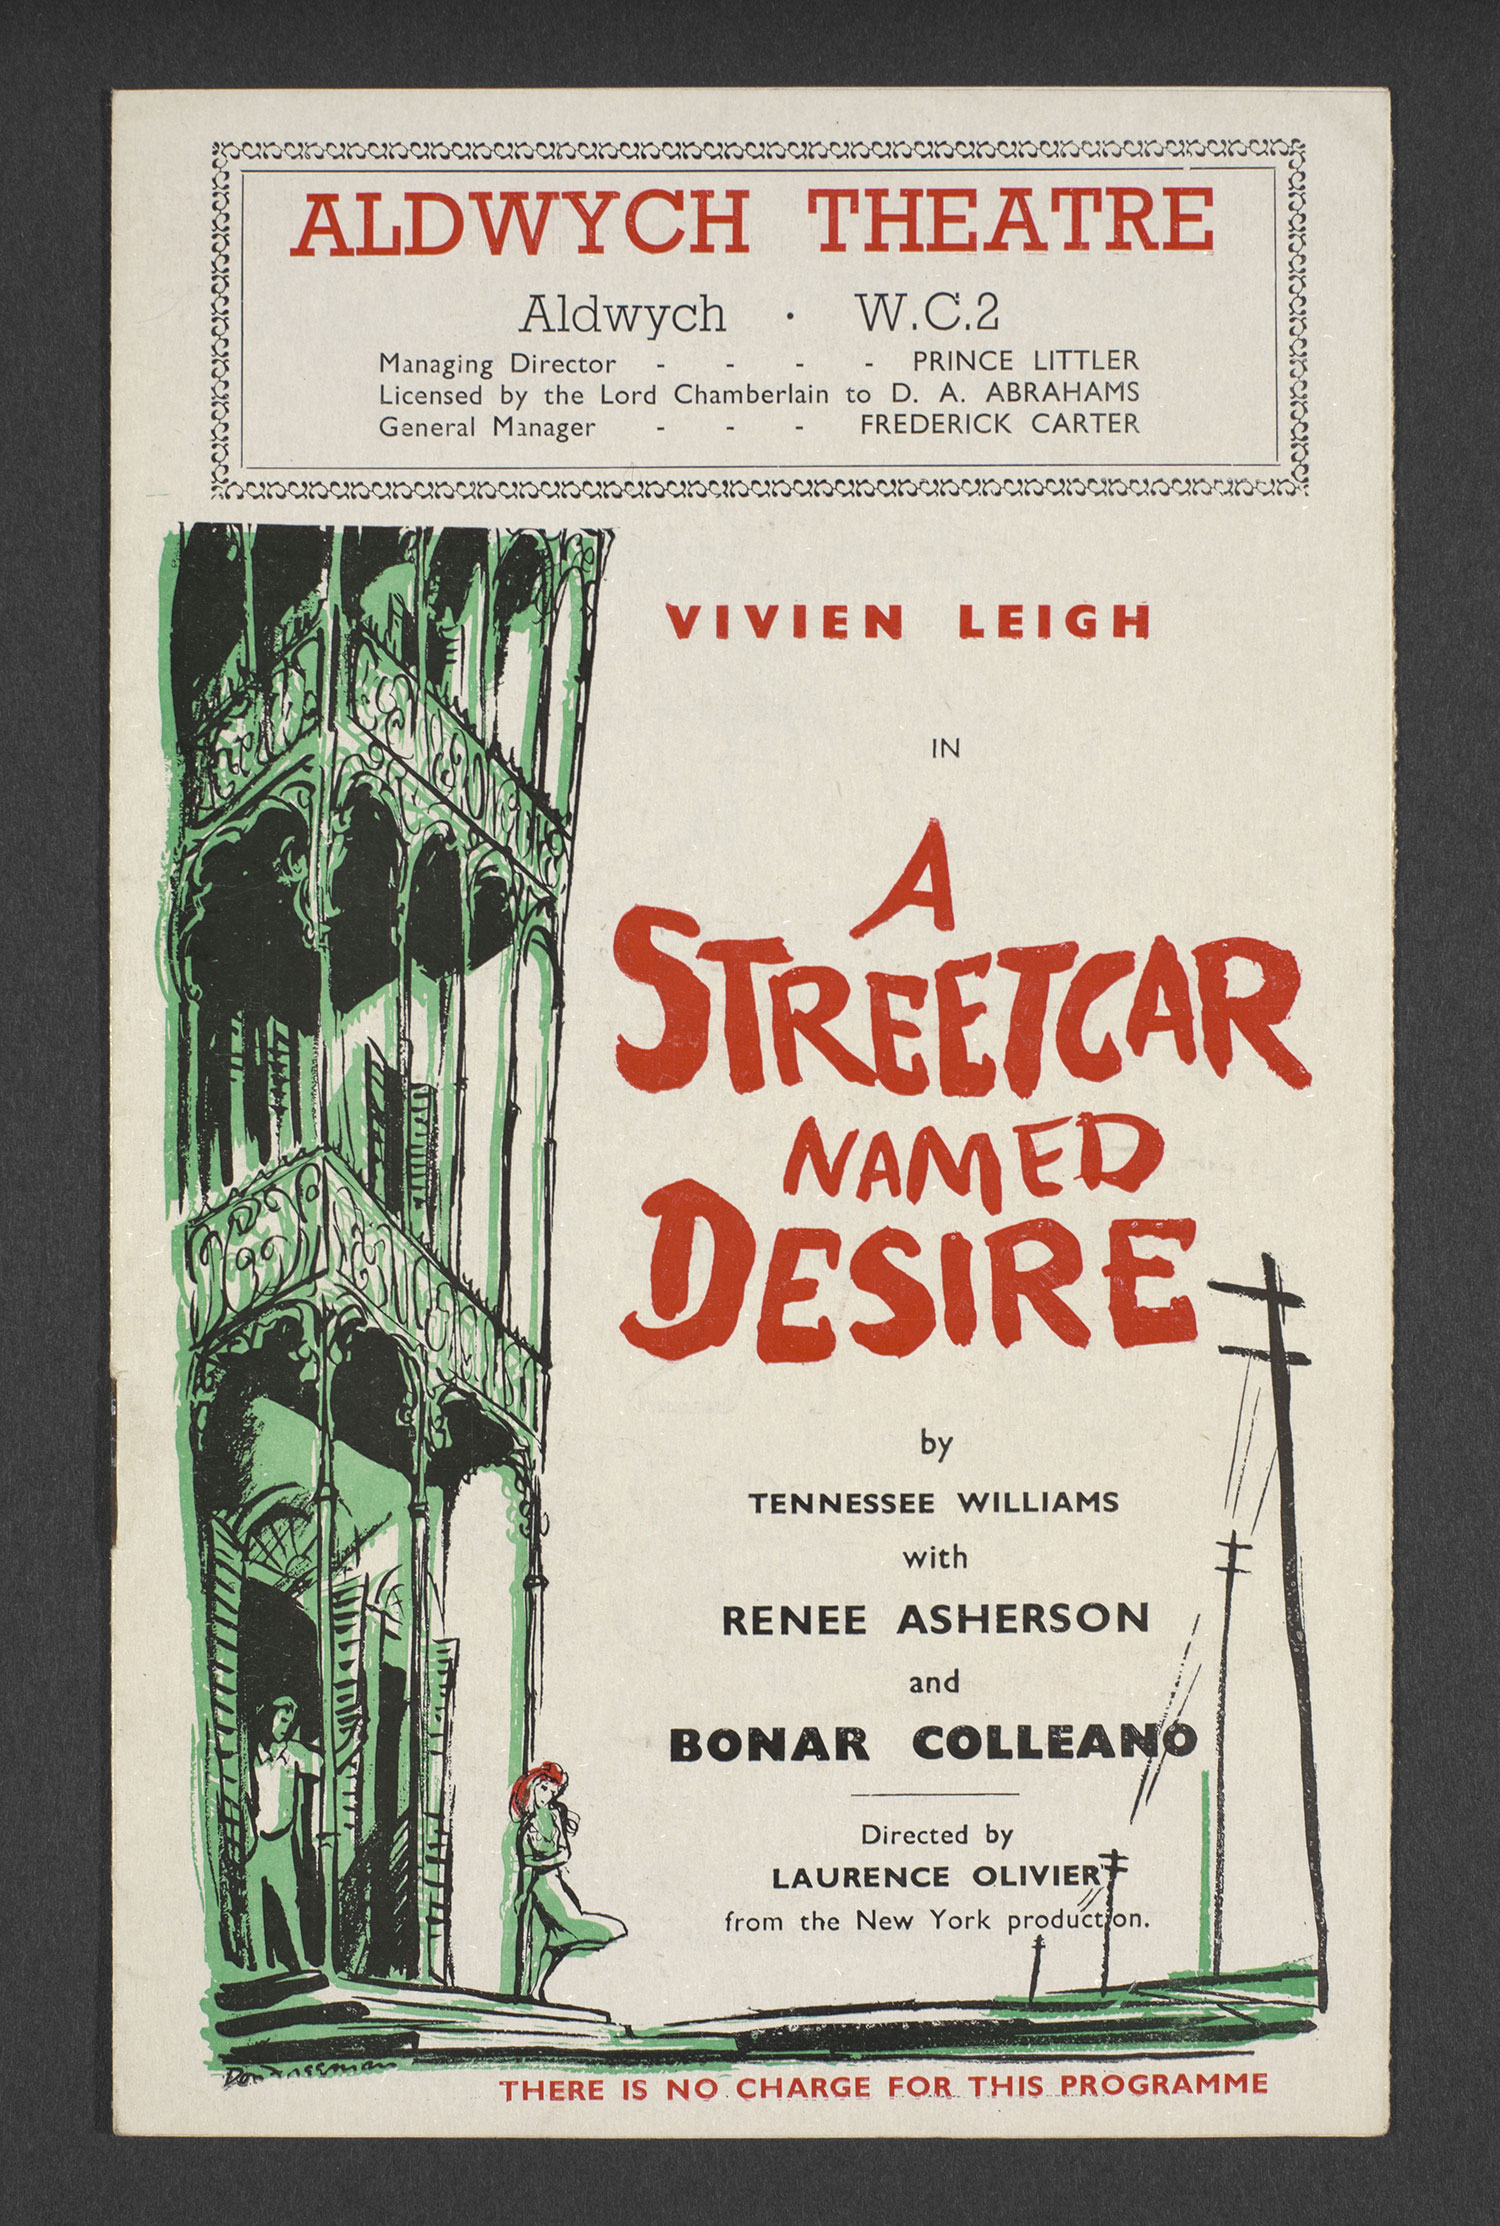 Theatre programme for A Streetcar Named Desire (1949) © Victoria and Albert Museum, London/ V.L. Archive